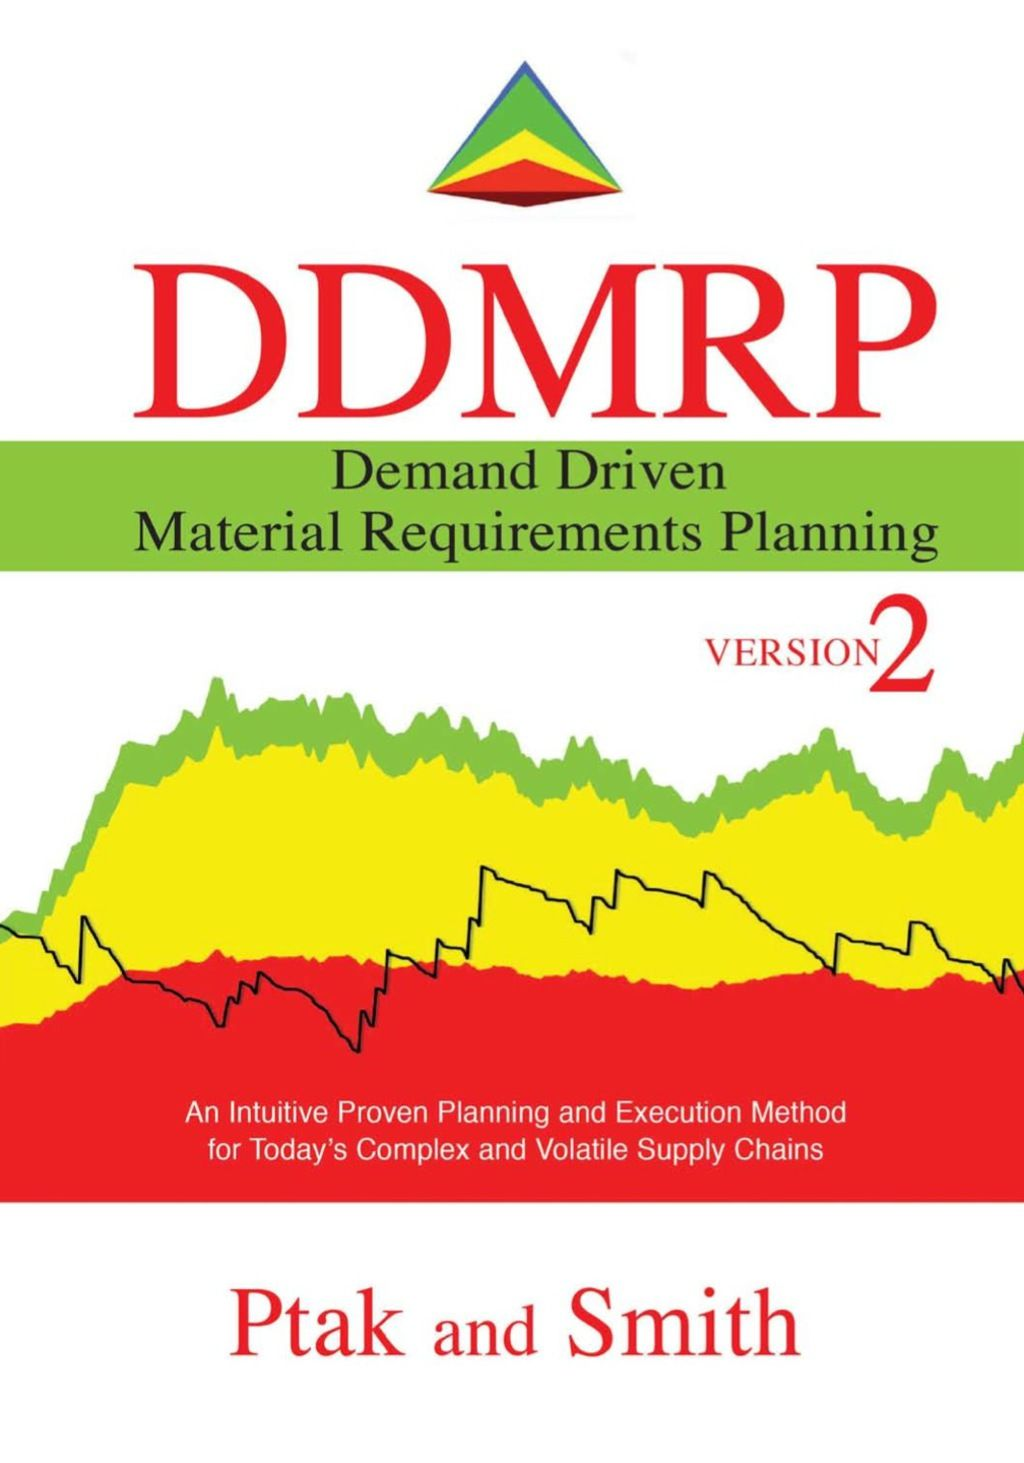 Demand Driven Material Requirements Planning (DDMRP